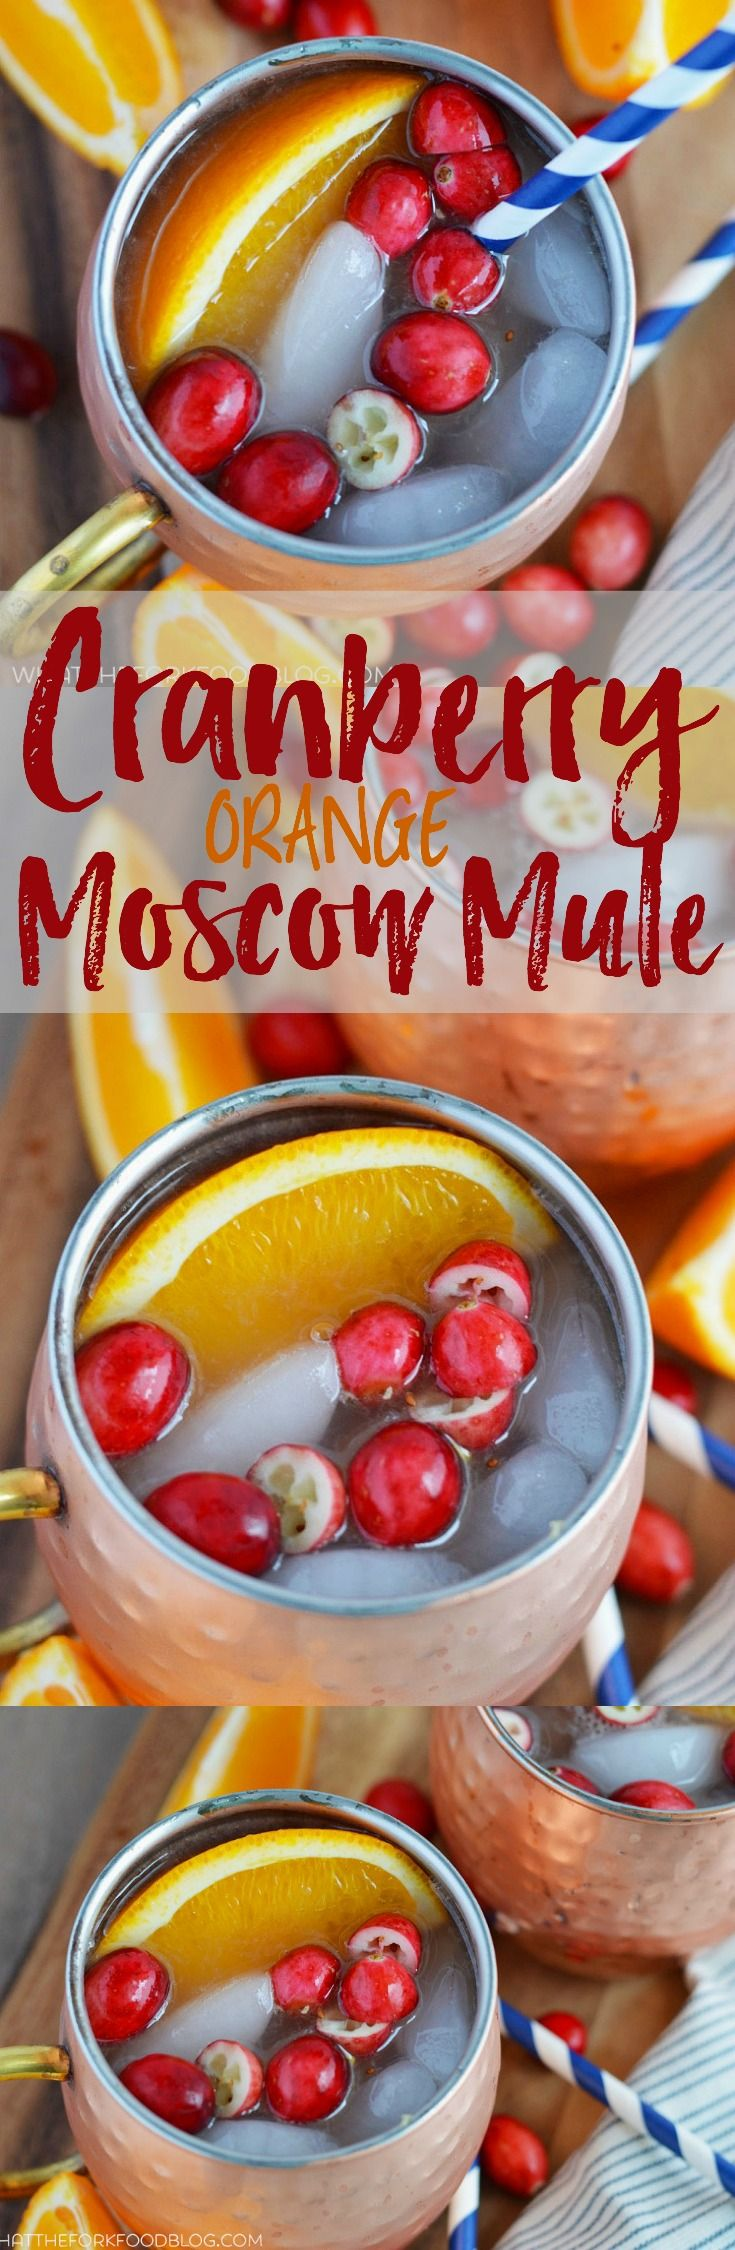 Cranberry Orange Moscow Mule from What The Fork Food Blog. A twist on the classic Moscow Mule, perfect for drinking all winter long. | whattheforkfoodblog.com